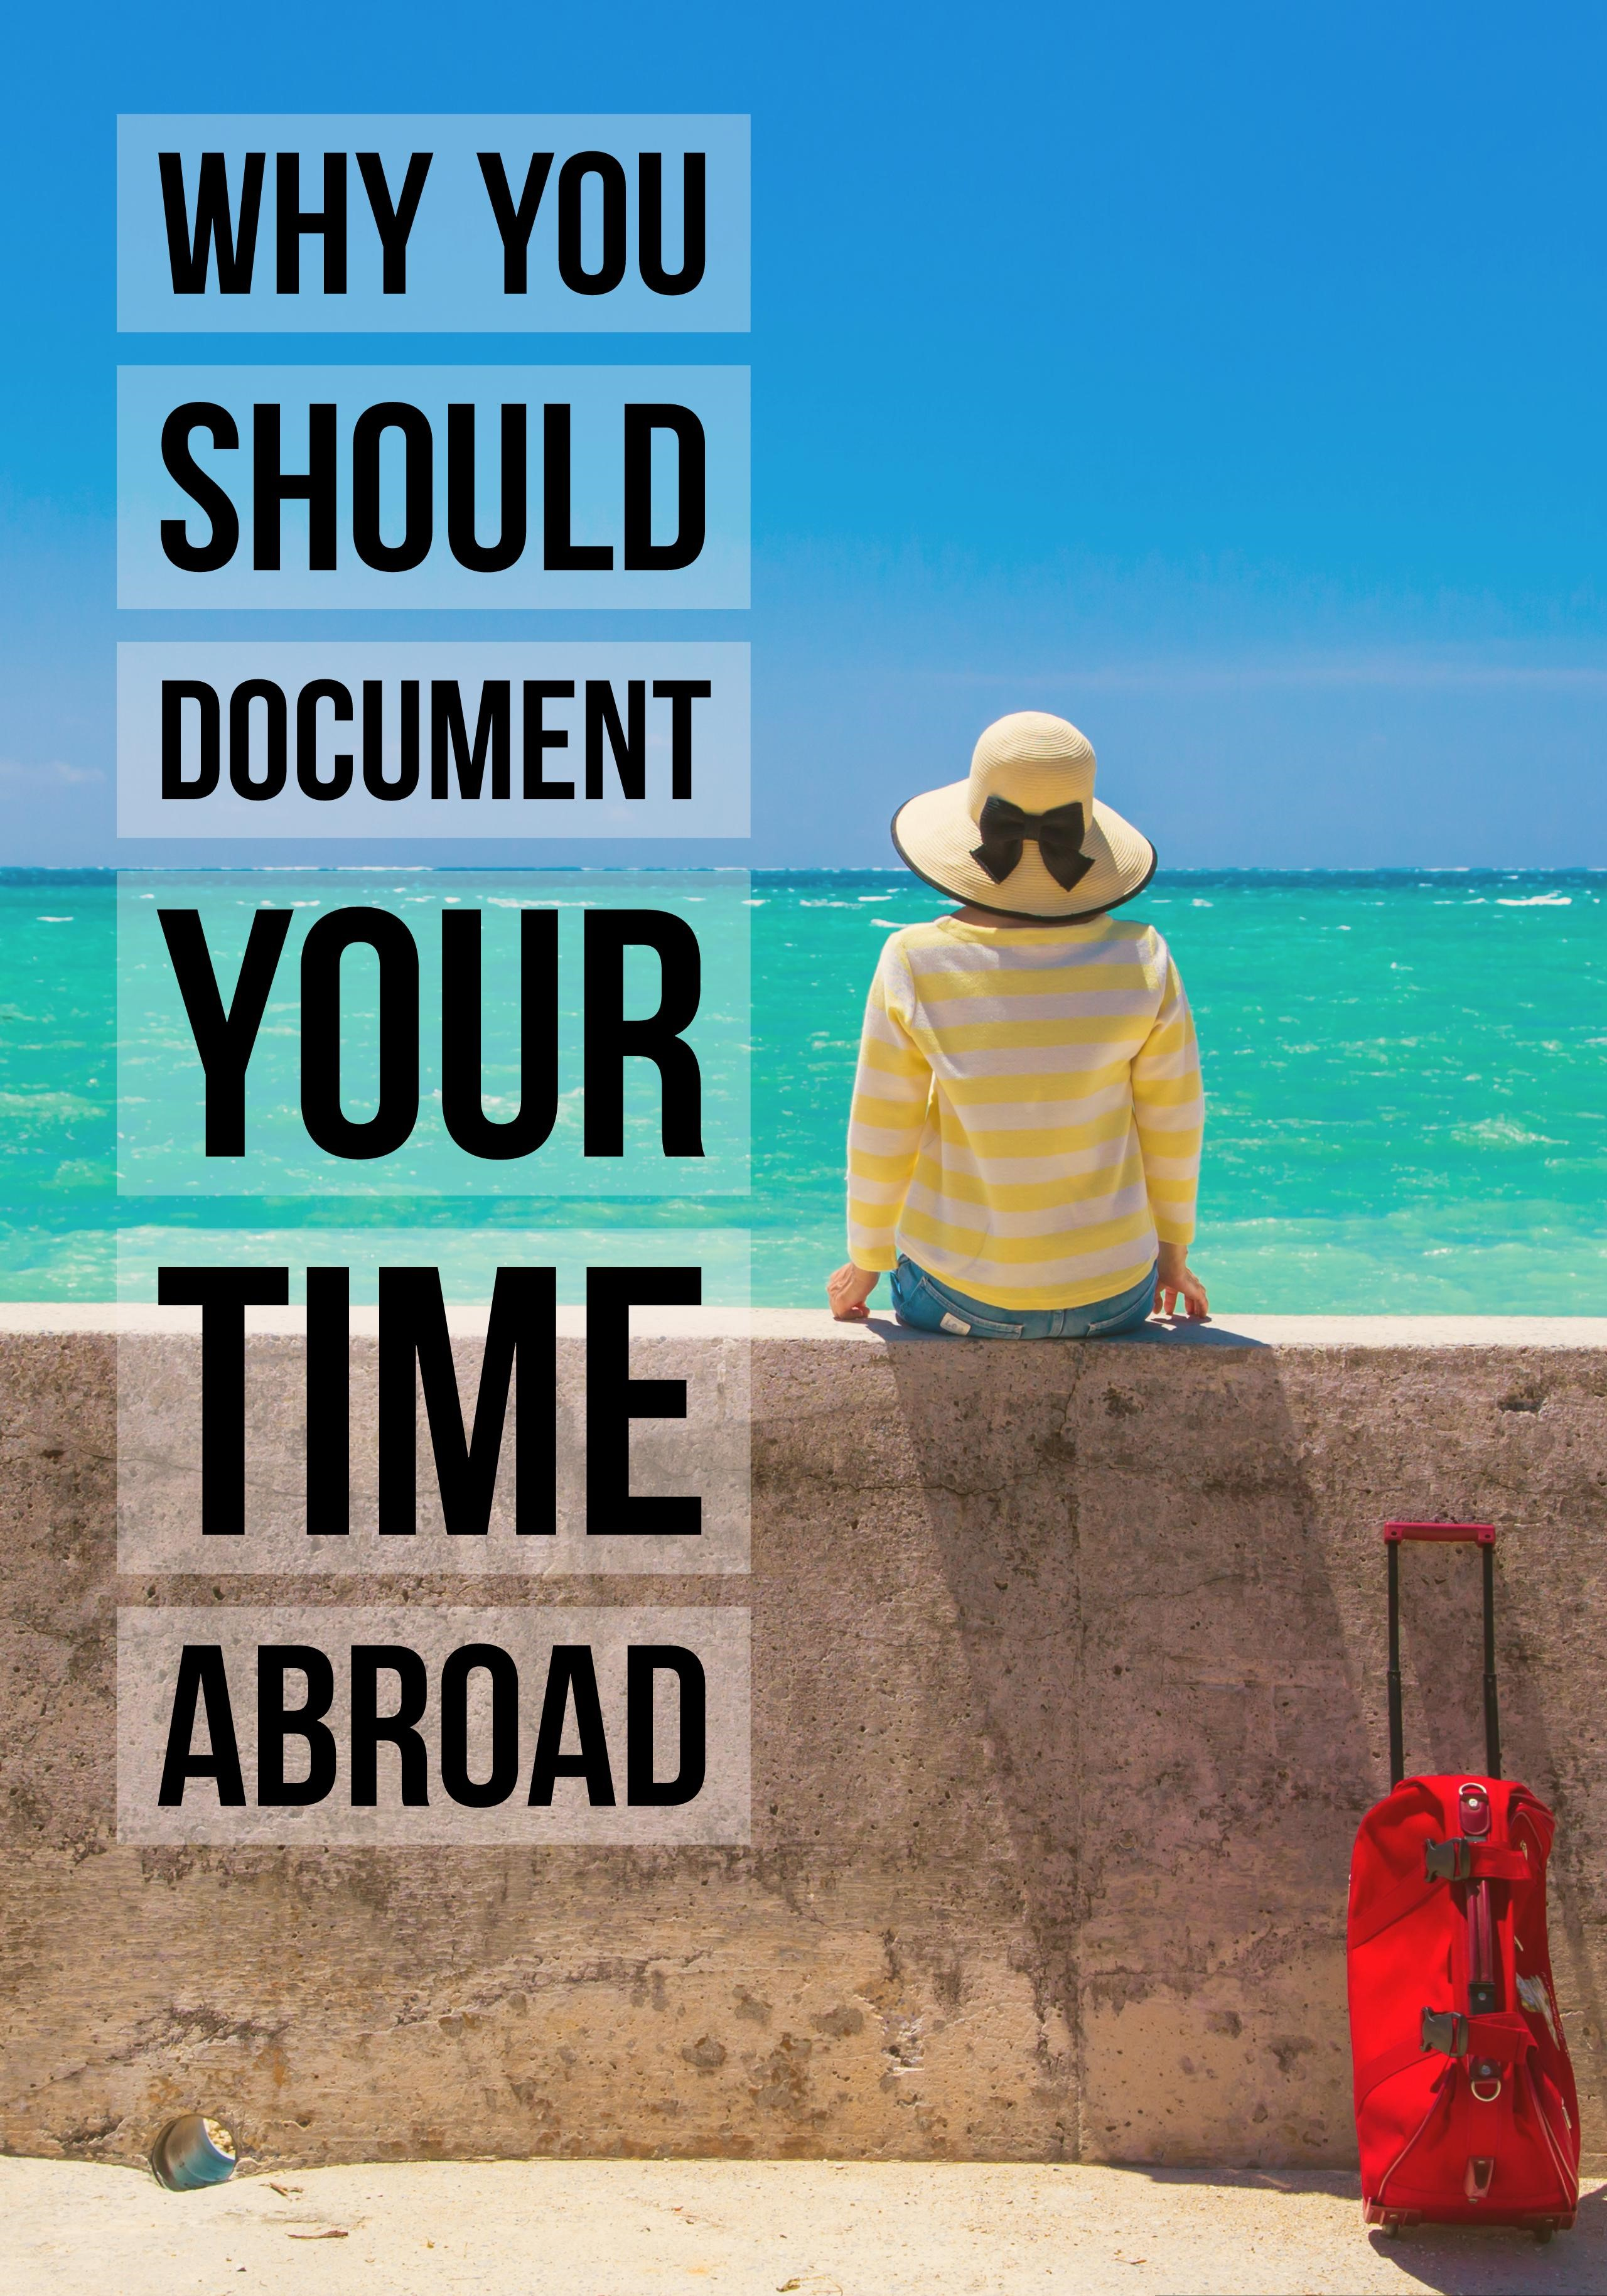 Why You Should Document Your Time Abroad